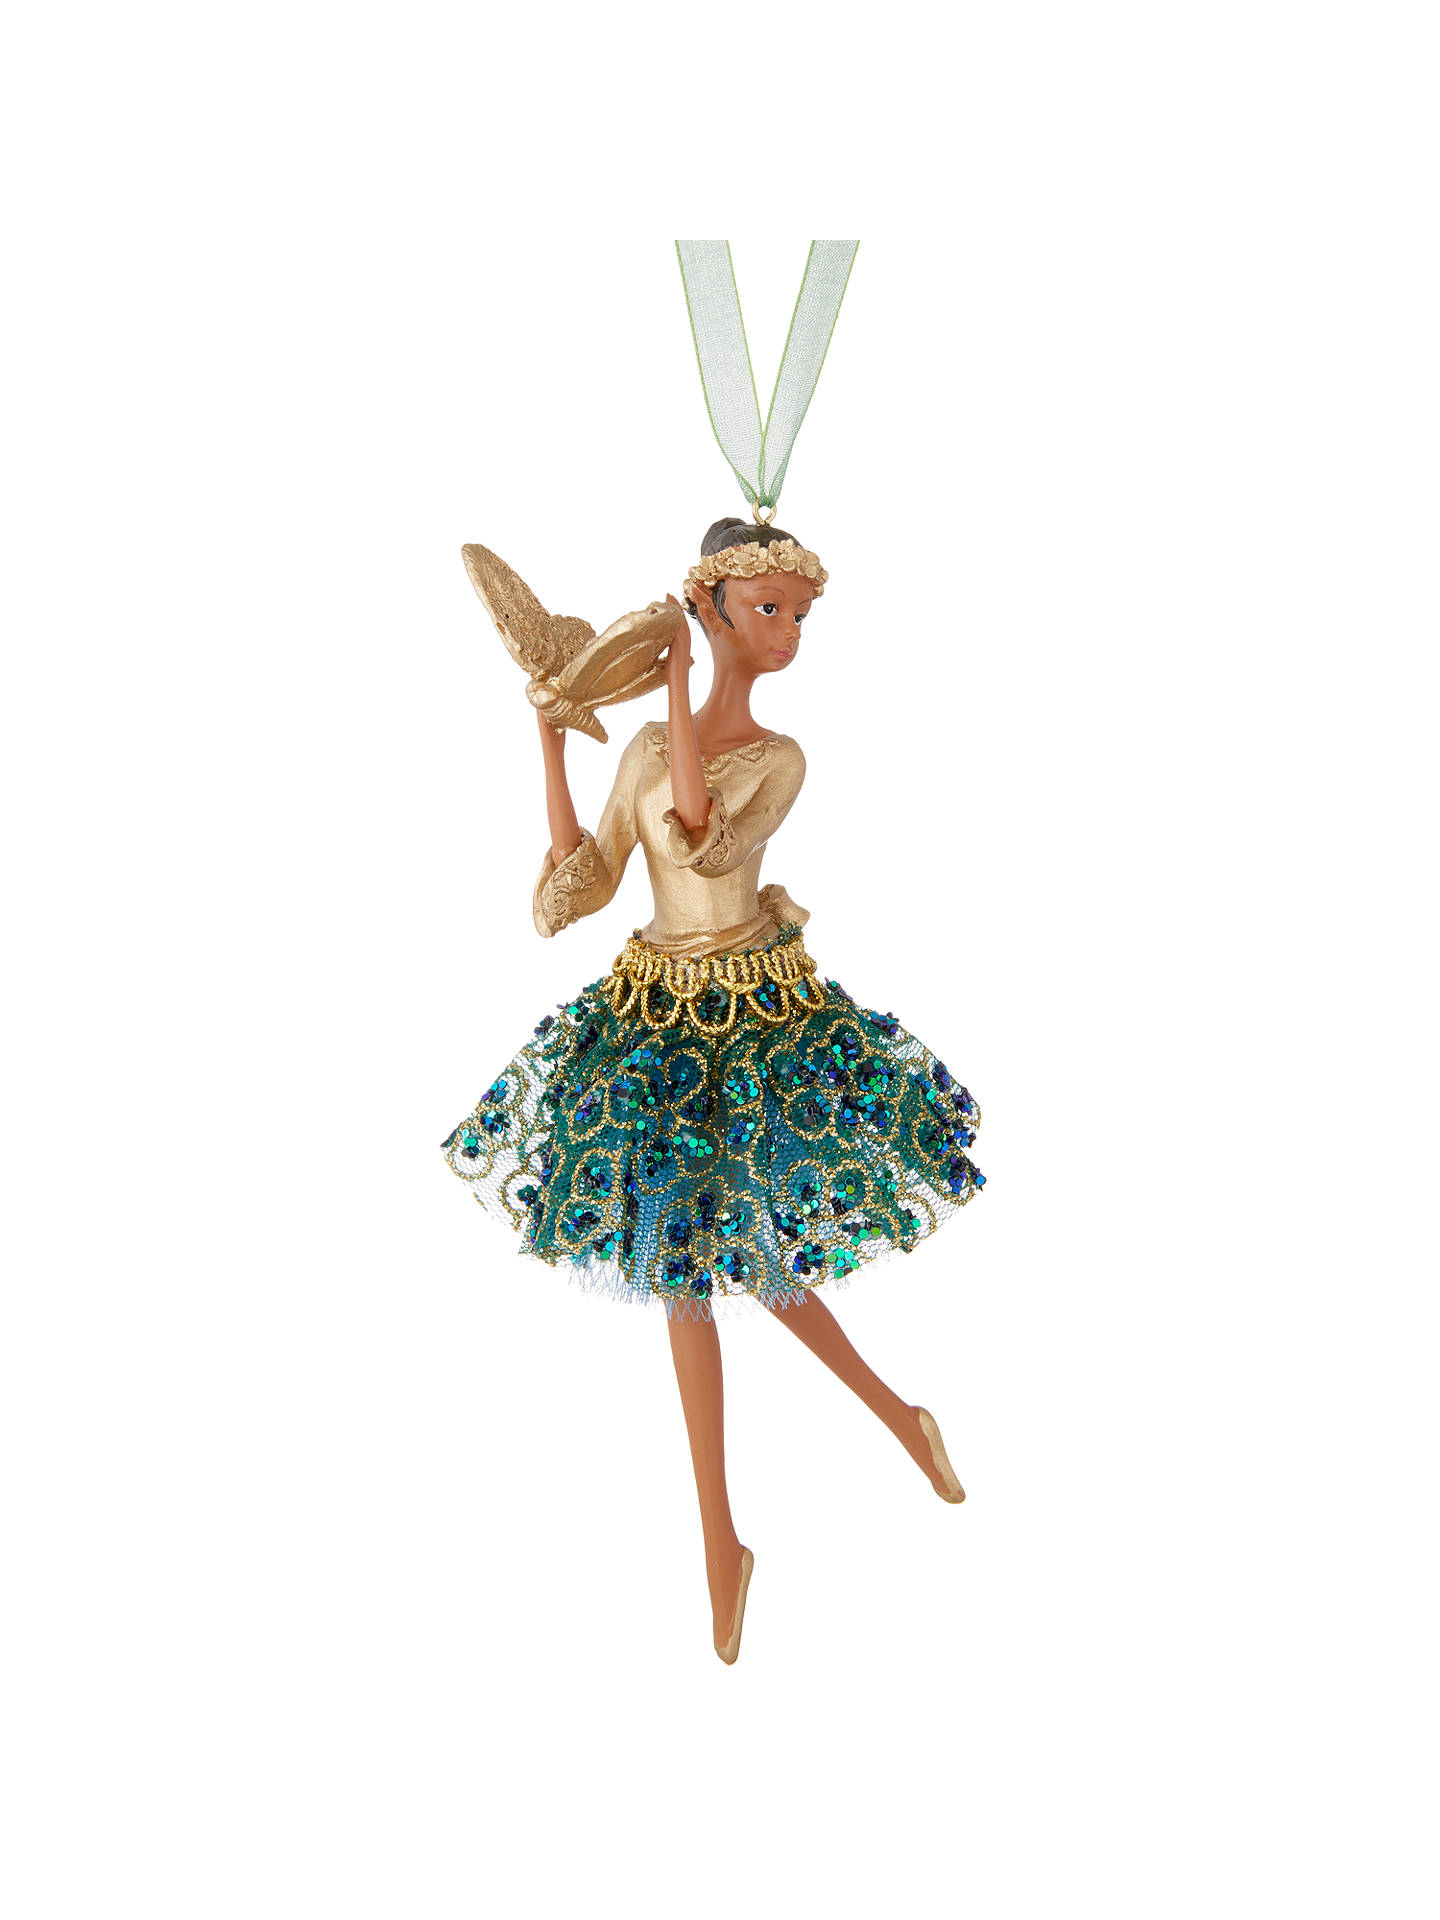 Buy John Lewis & Partners Emerald Ballerina Tree Decoration, Green Online at johnlewis.com